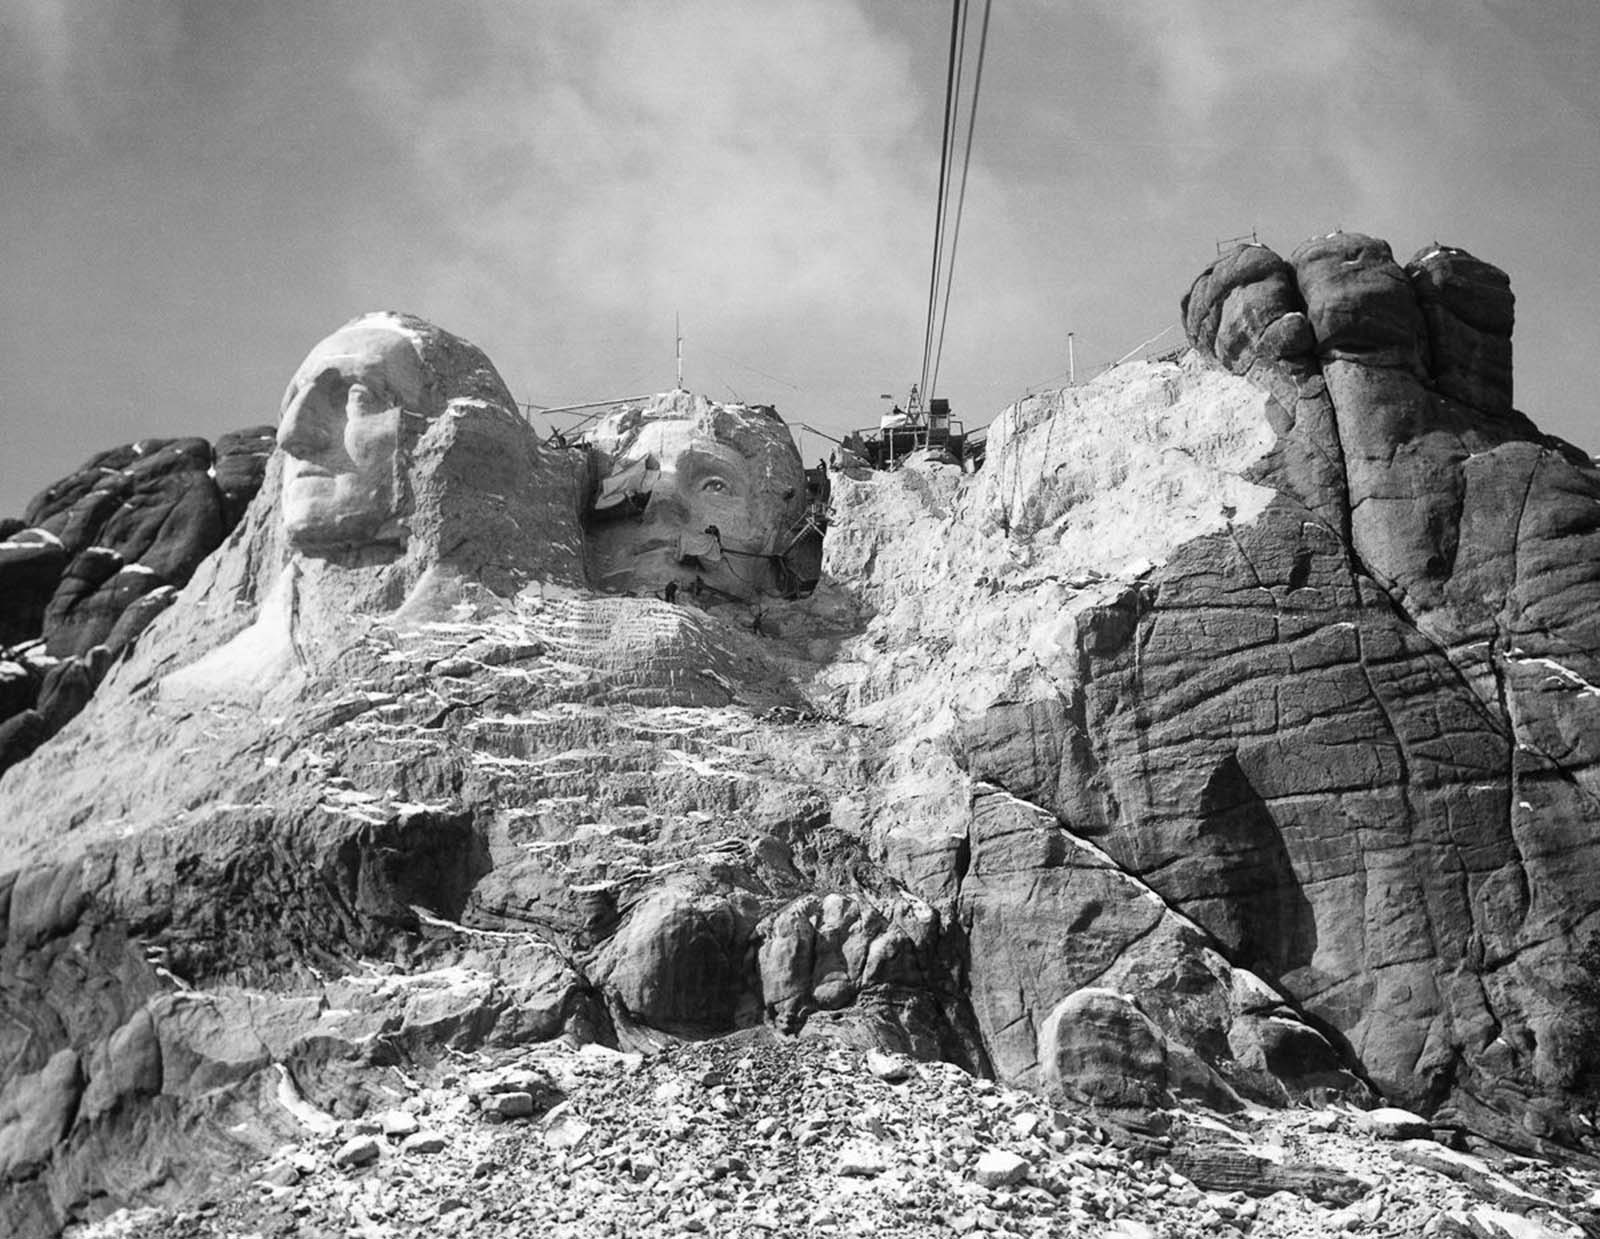 The progress of Mount Rushmore project in 1935.